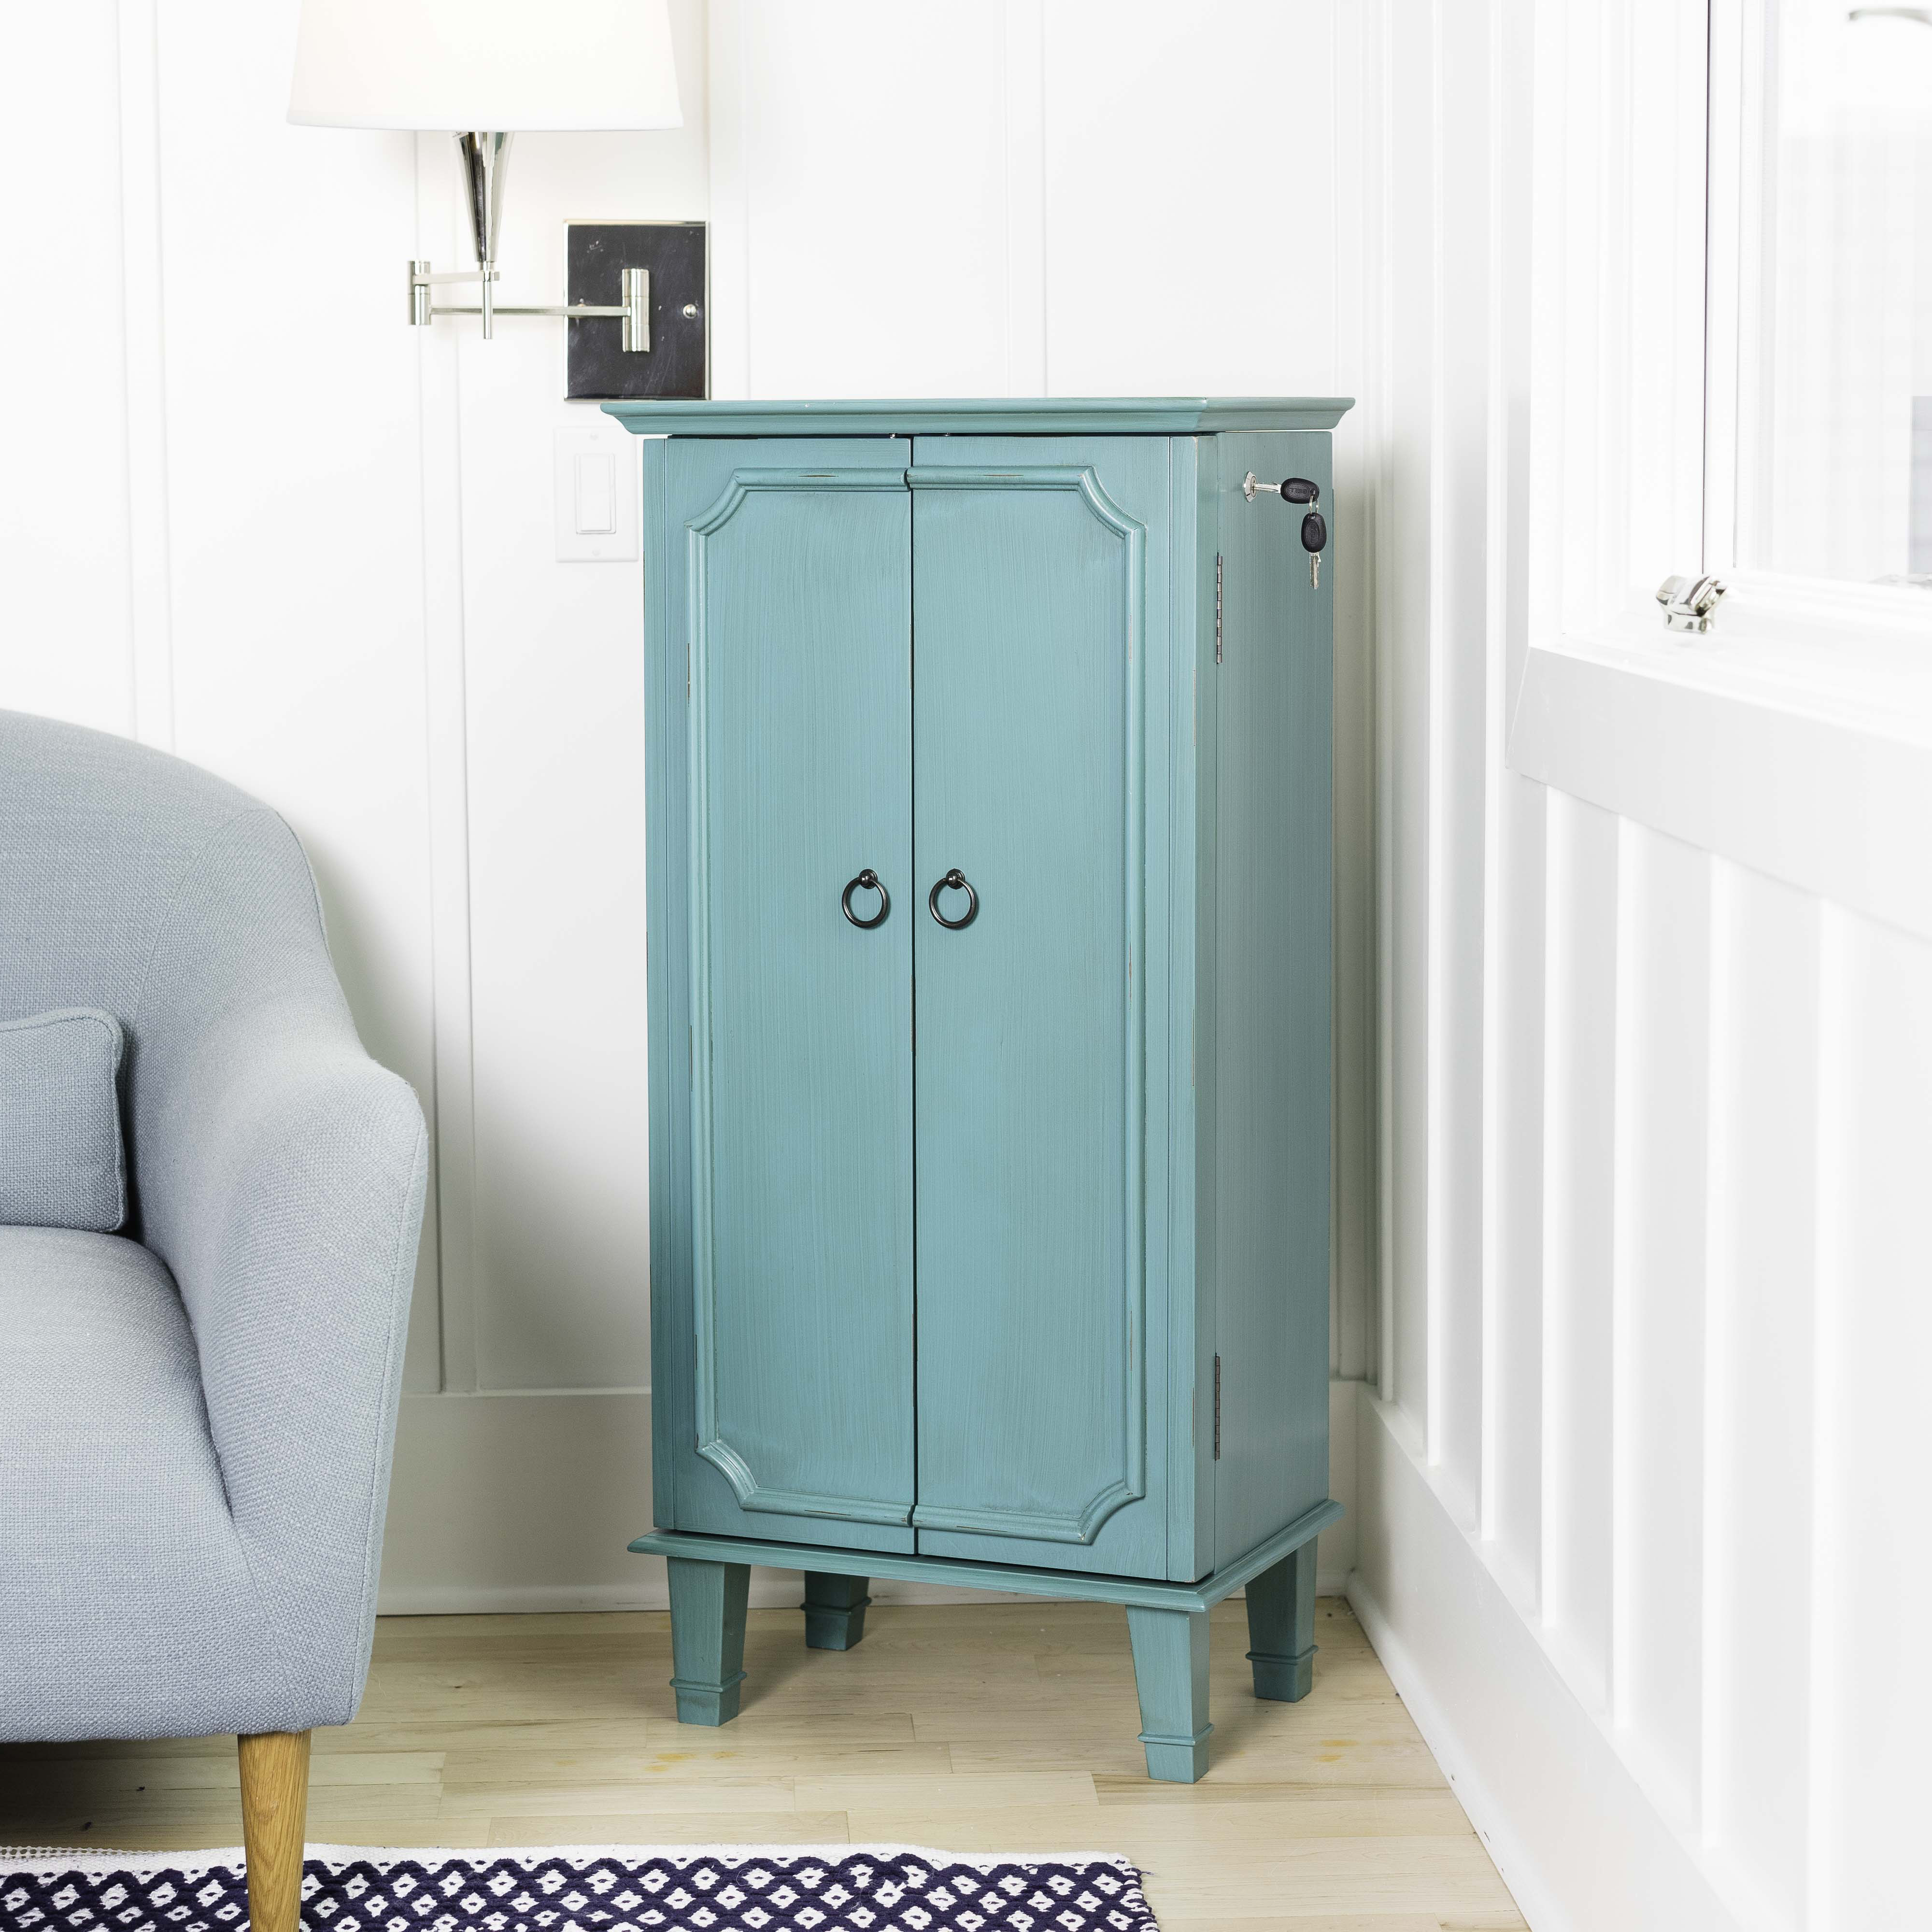 Hives & Honey Cabby Fully-Locking Jewelry Armoire - Turquoise